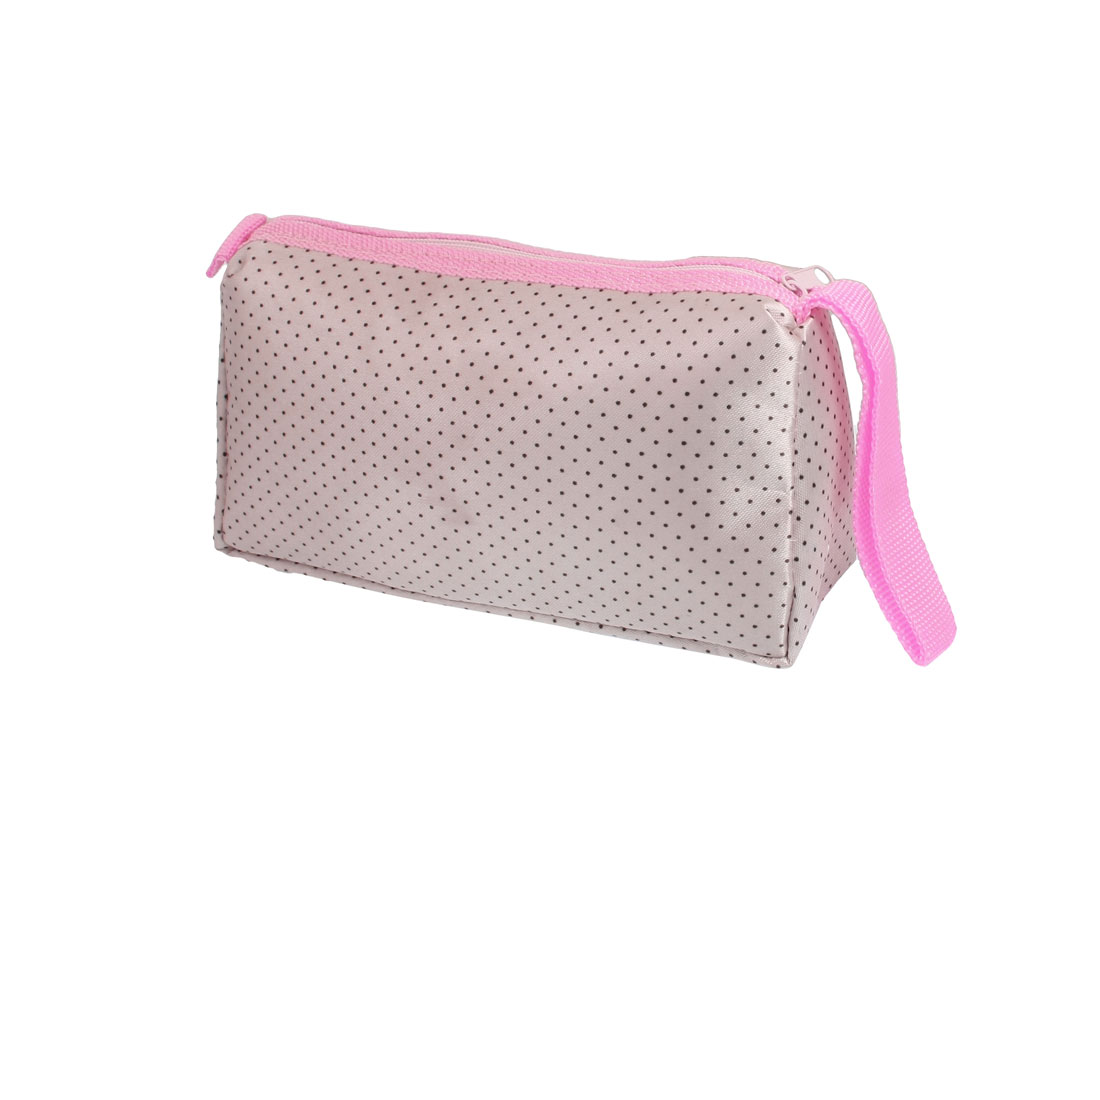 Brown Dotted Pattern Perfume Brushes Pouch Makeup Holder Bag w Mirror for Lady